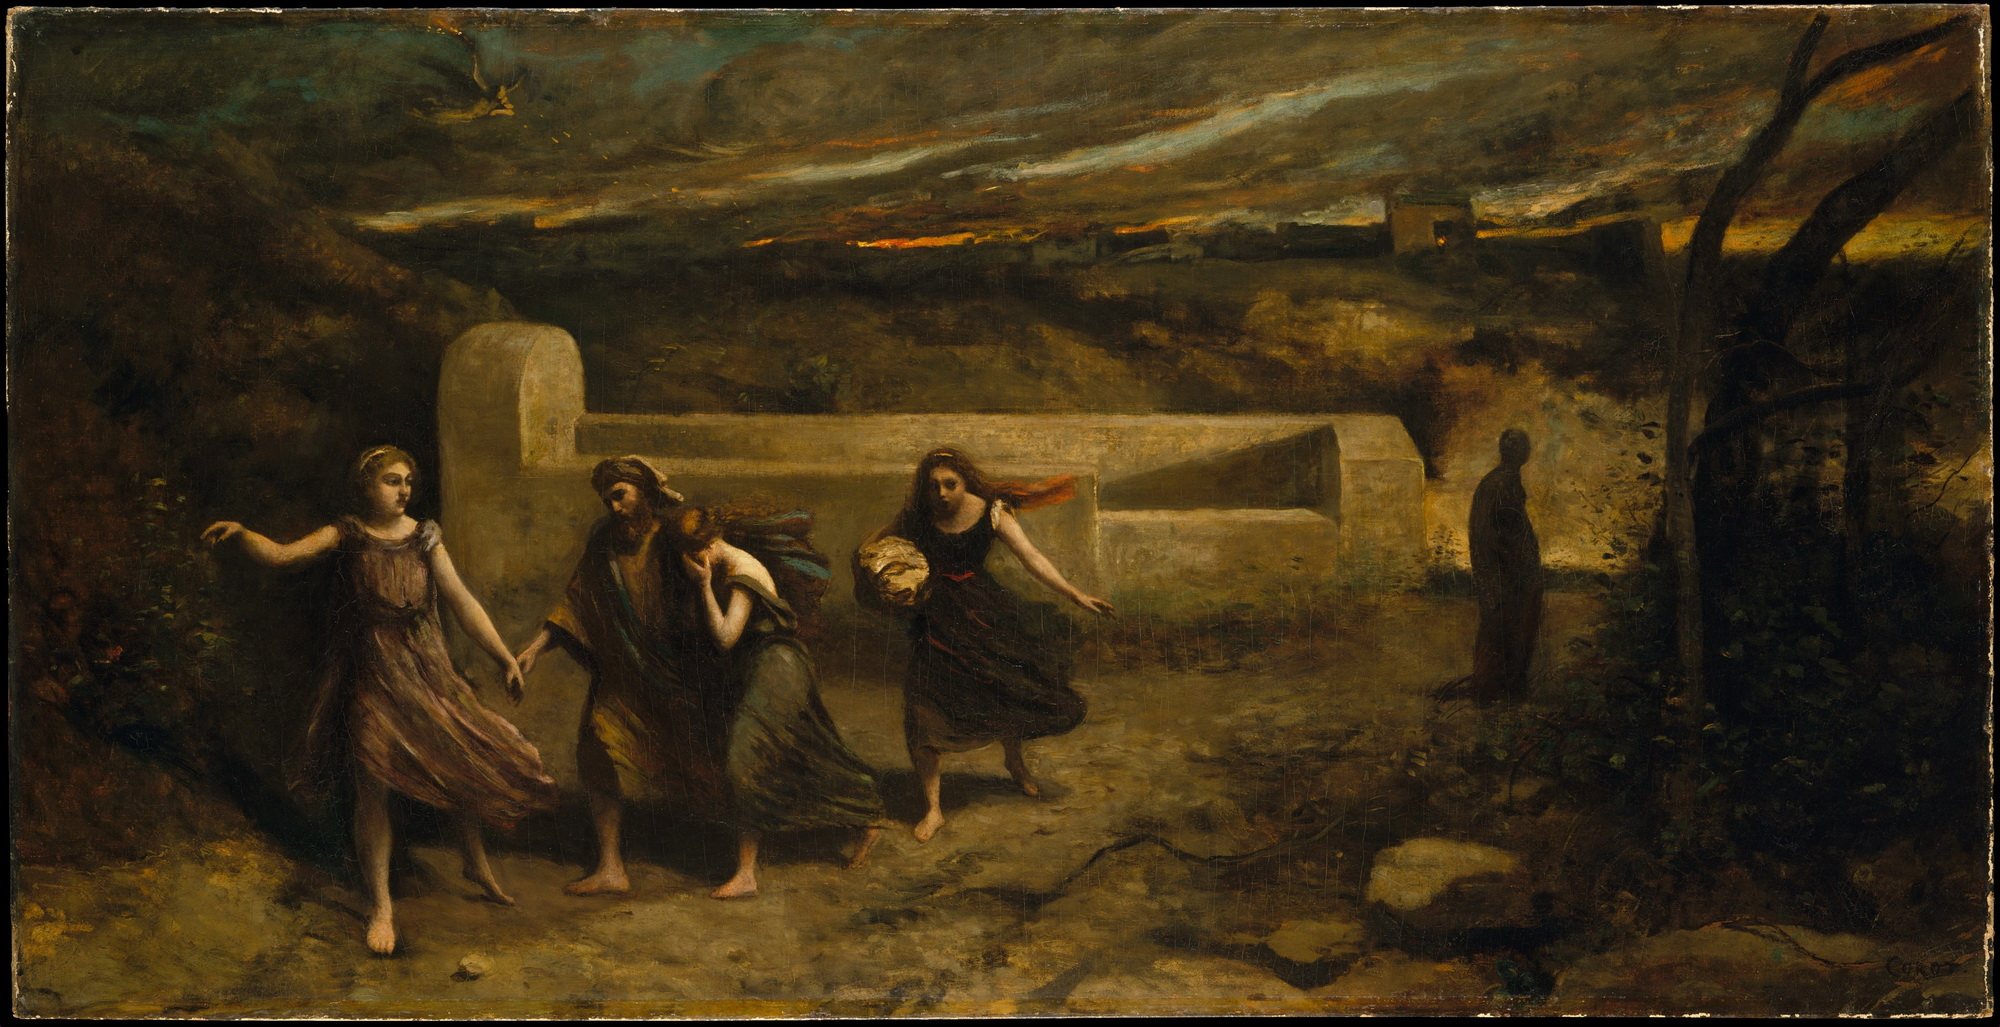 Camille Corot The Burning of Sodom-2